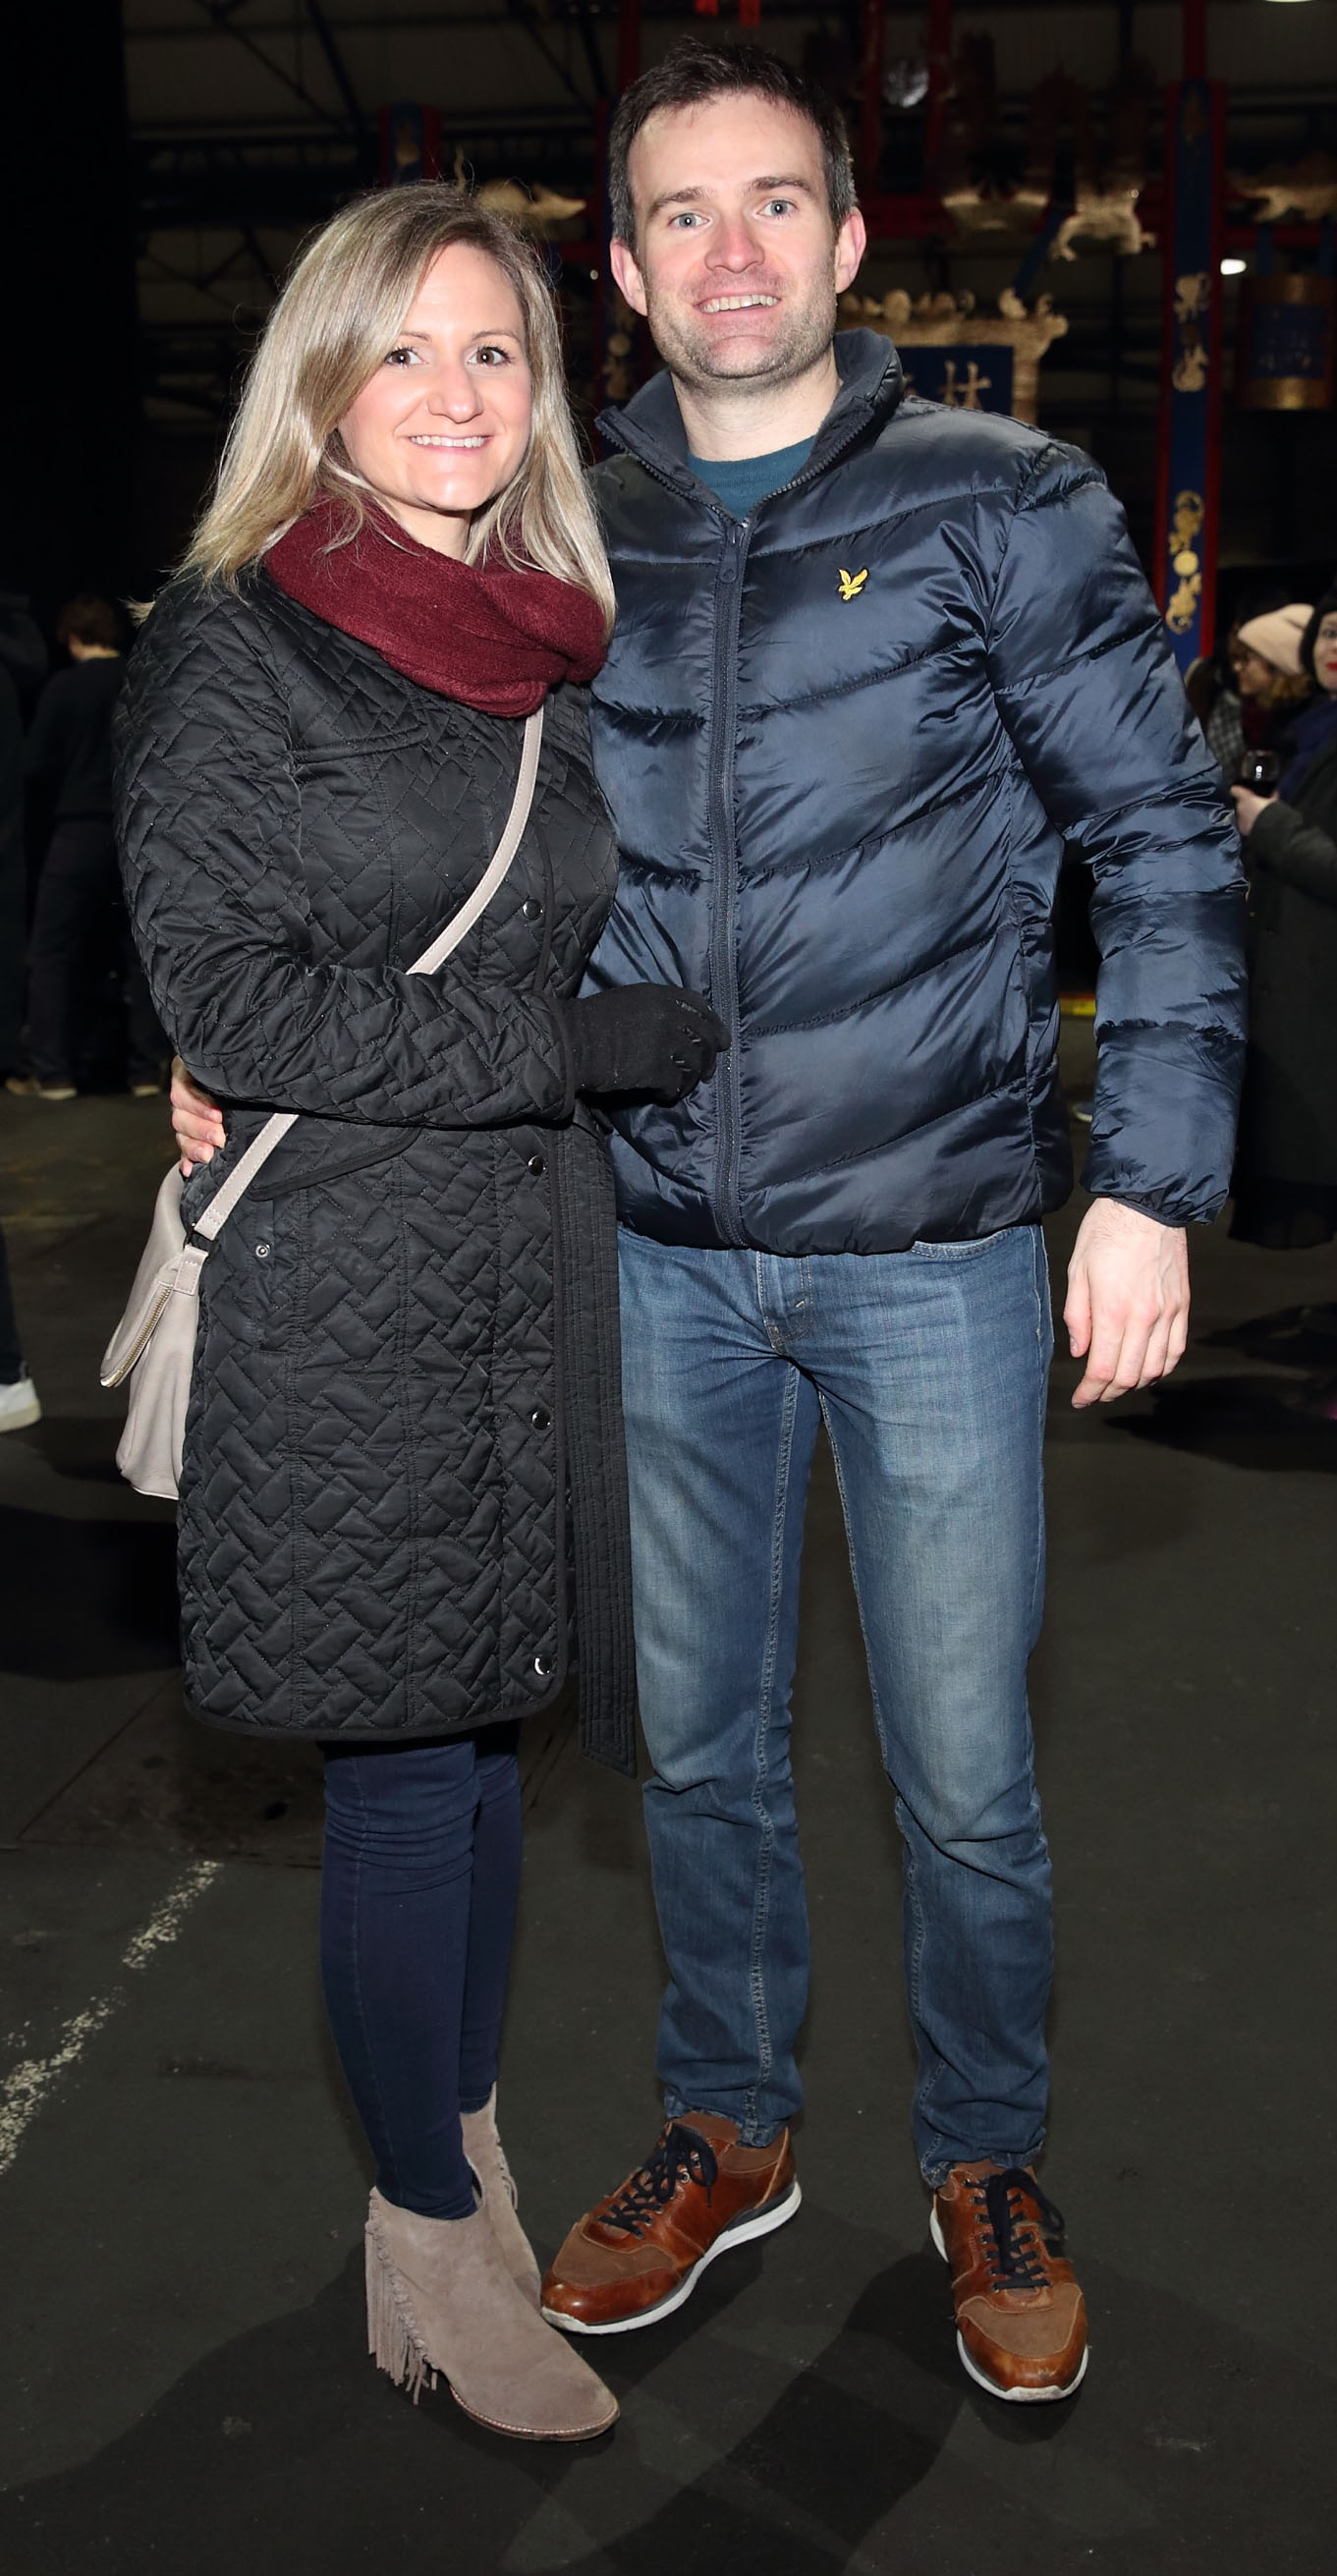 Kate Glagola and Kieran Hayes at the opening ceremony of Dublin Chinese New Year Festival 2020 which runs from 24th January - 10th February and celebrates the Year of the Rat.  Pic: Brian McEvoy Photography